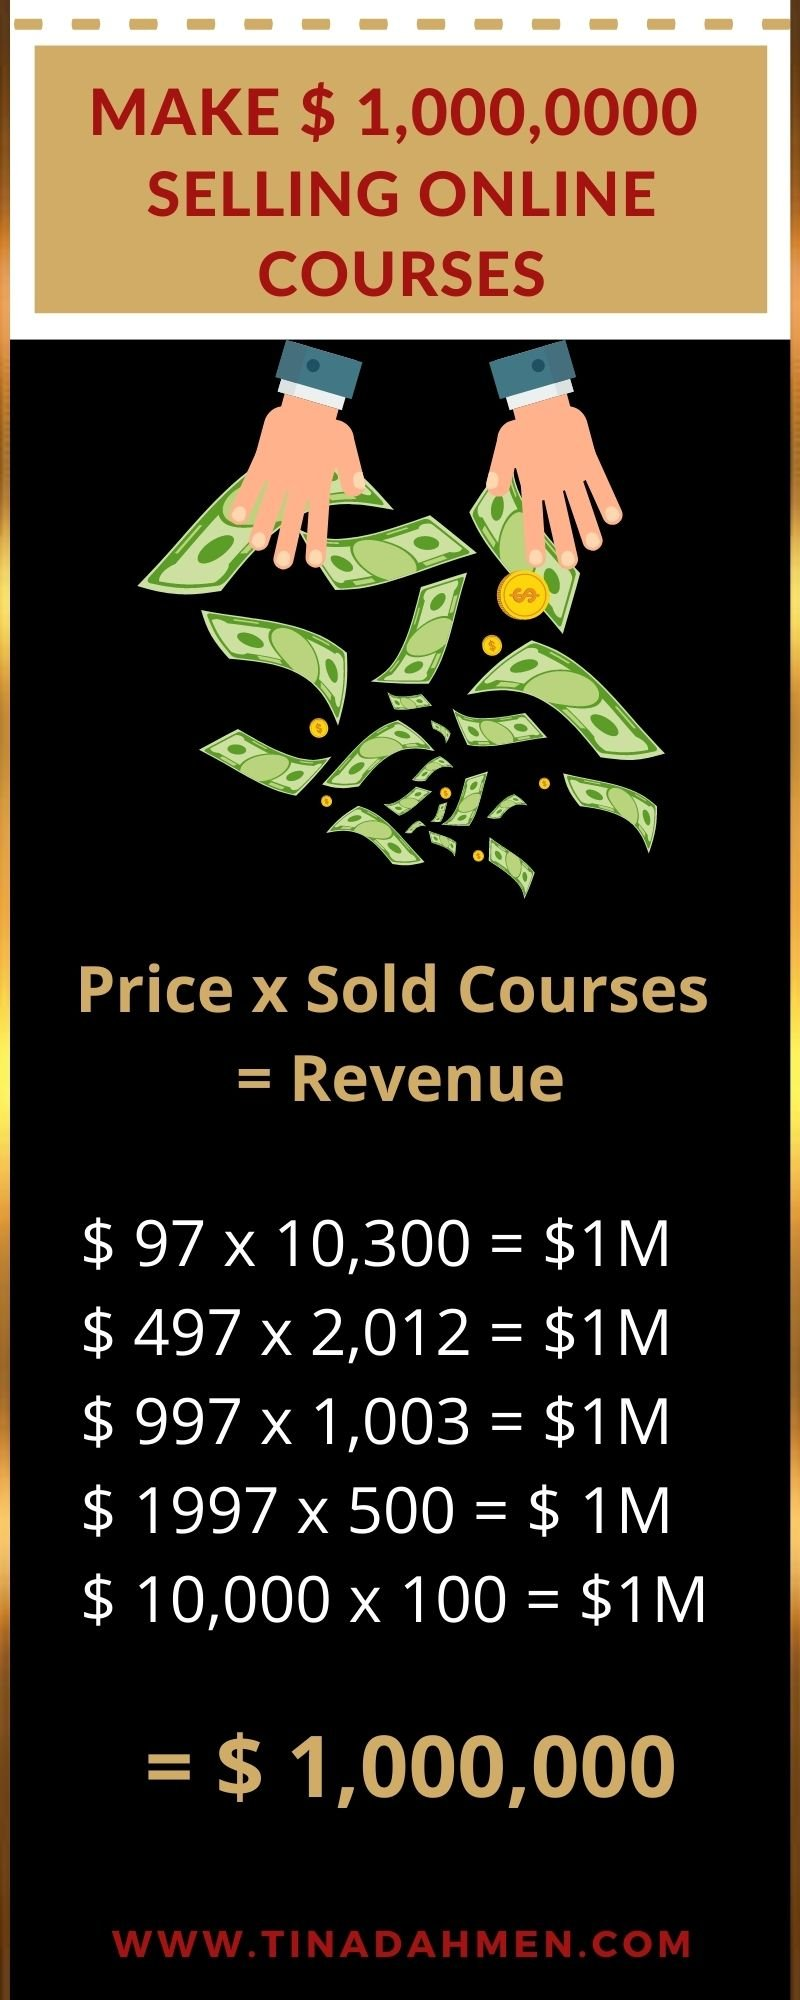 How much can you make selling online courses?